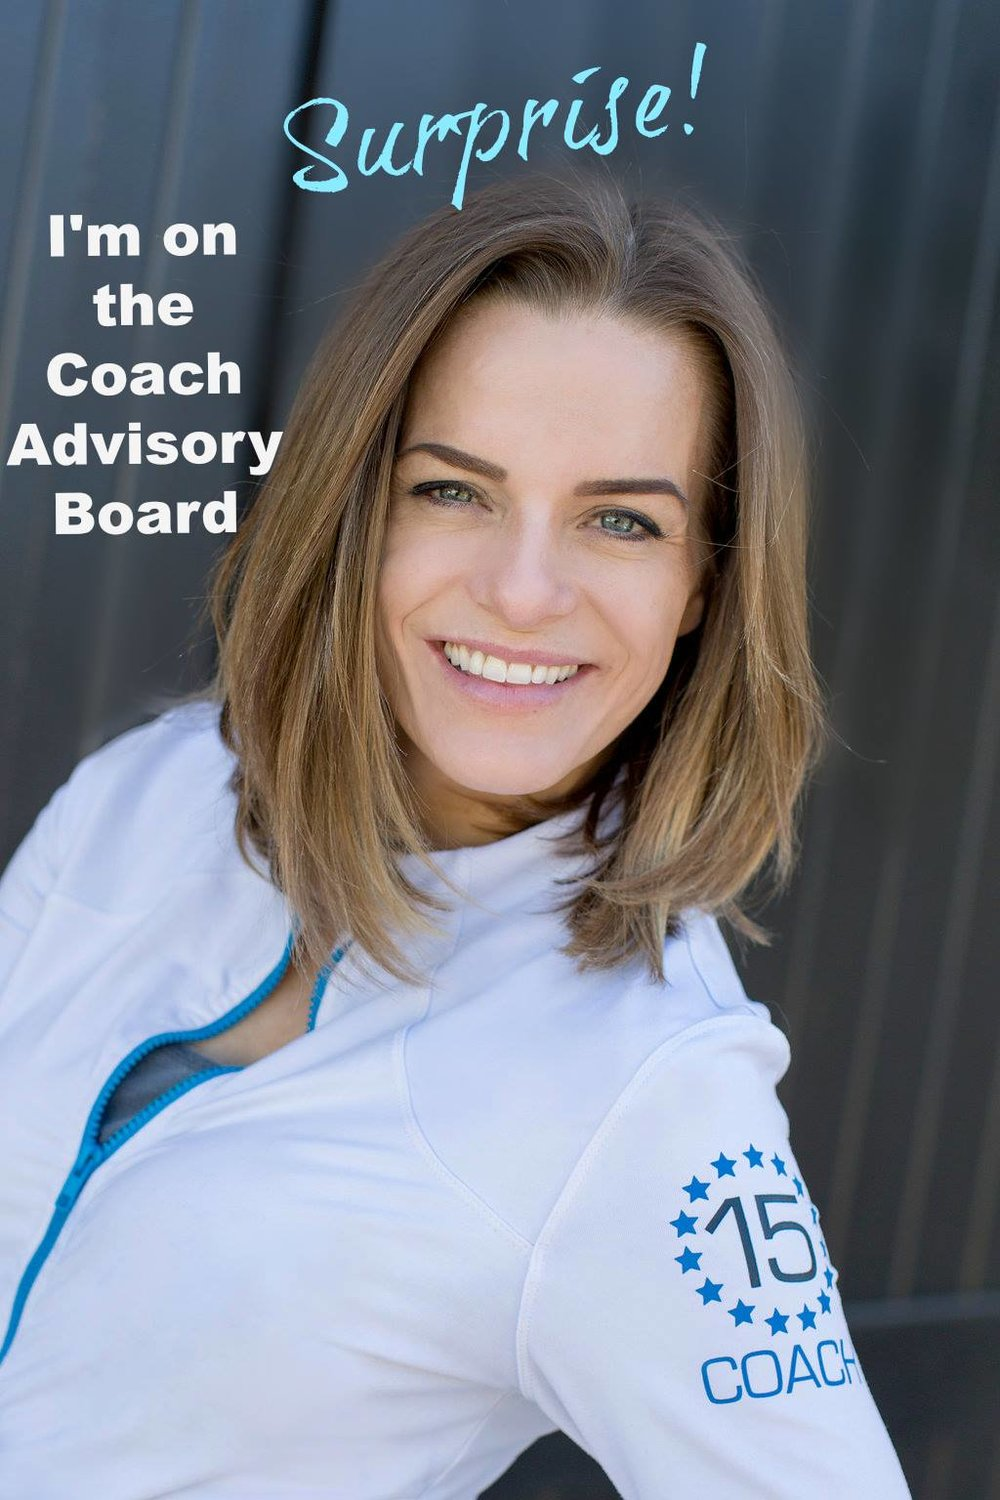 Beachbody Coach Advisory Board